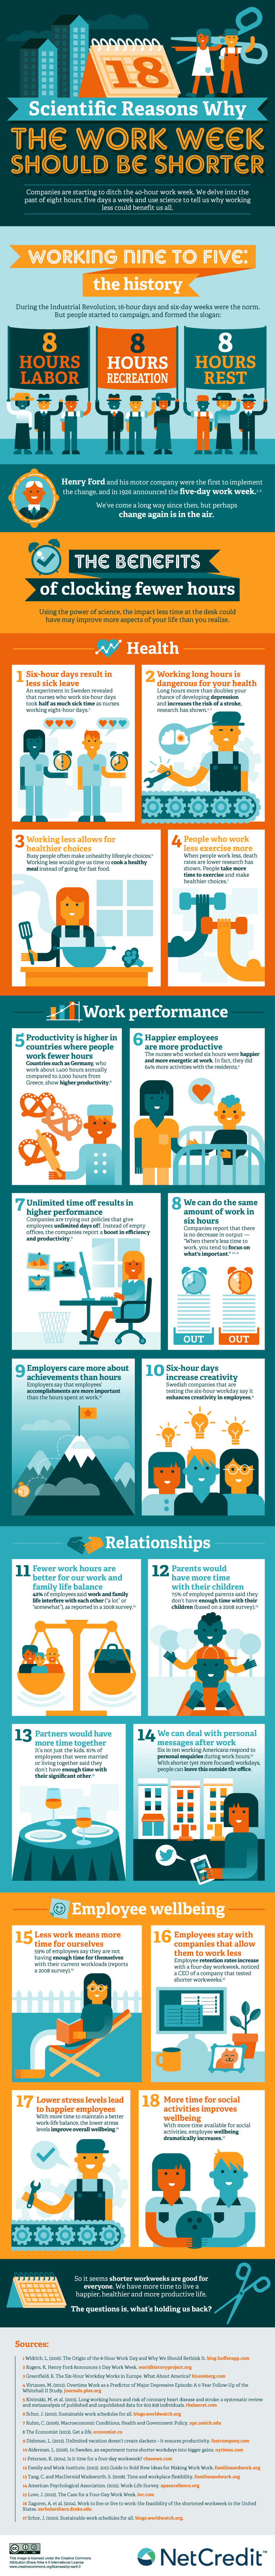 18 Scientific Reasons Why the Work Week Should Be Shorter - #infographic